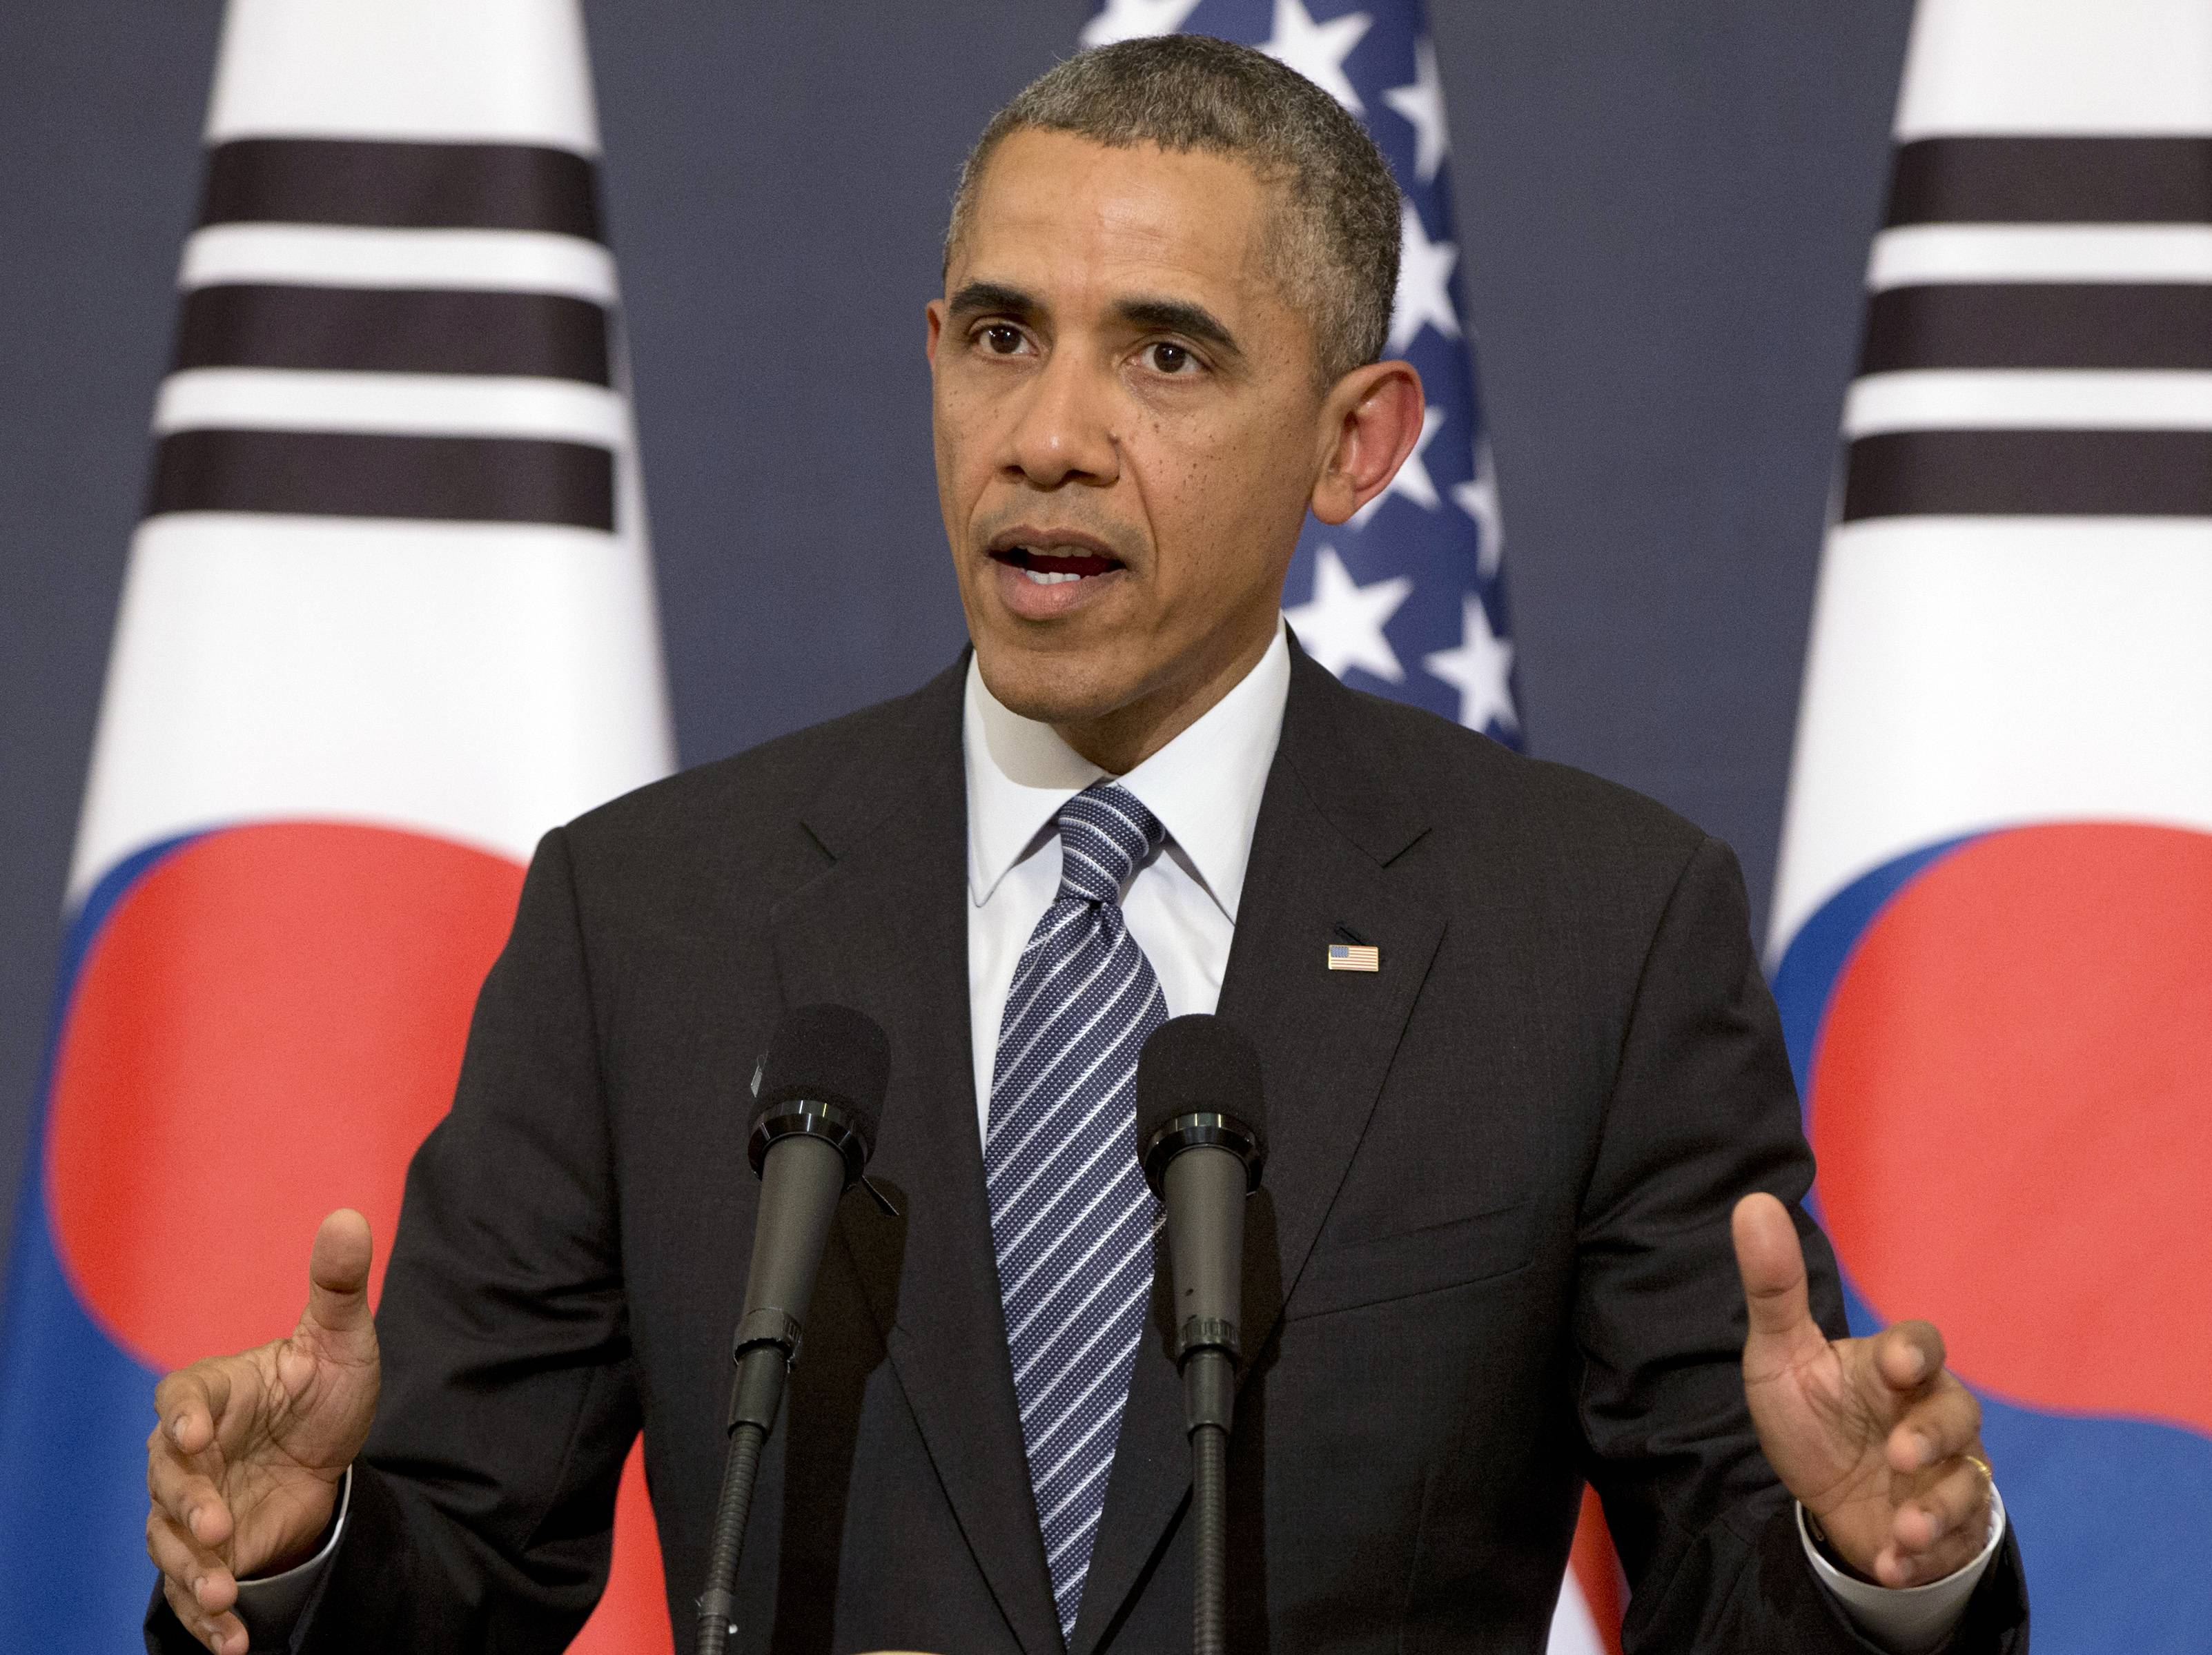 U.S. President Barack Obama gestures as he speaks during a joint news conference with South Korean President Park Geun-hye at the Blue House, Friday, April 25, 2014, in Seoul, South Korea. The U.S. and Europe are laying the groundwork to sanction broad sections of Russia's economy if Moscow invades eastern Ukraine, Obama said Friday, even as he acknowledged those sanctions may fail to deter Vladimir Putin.